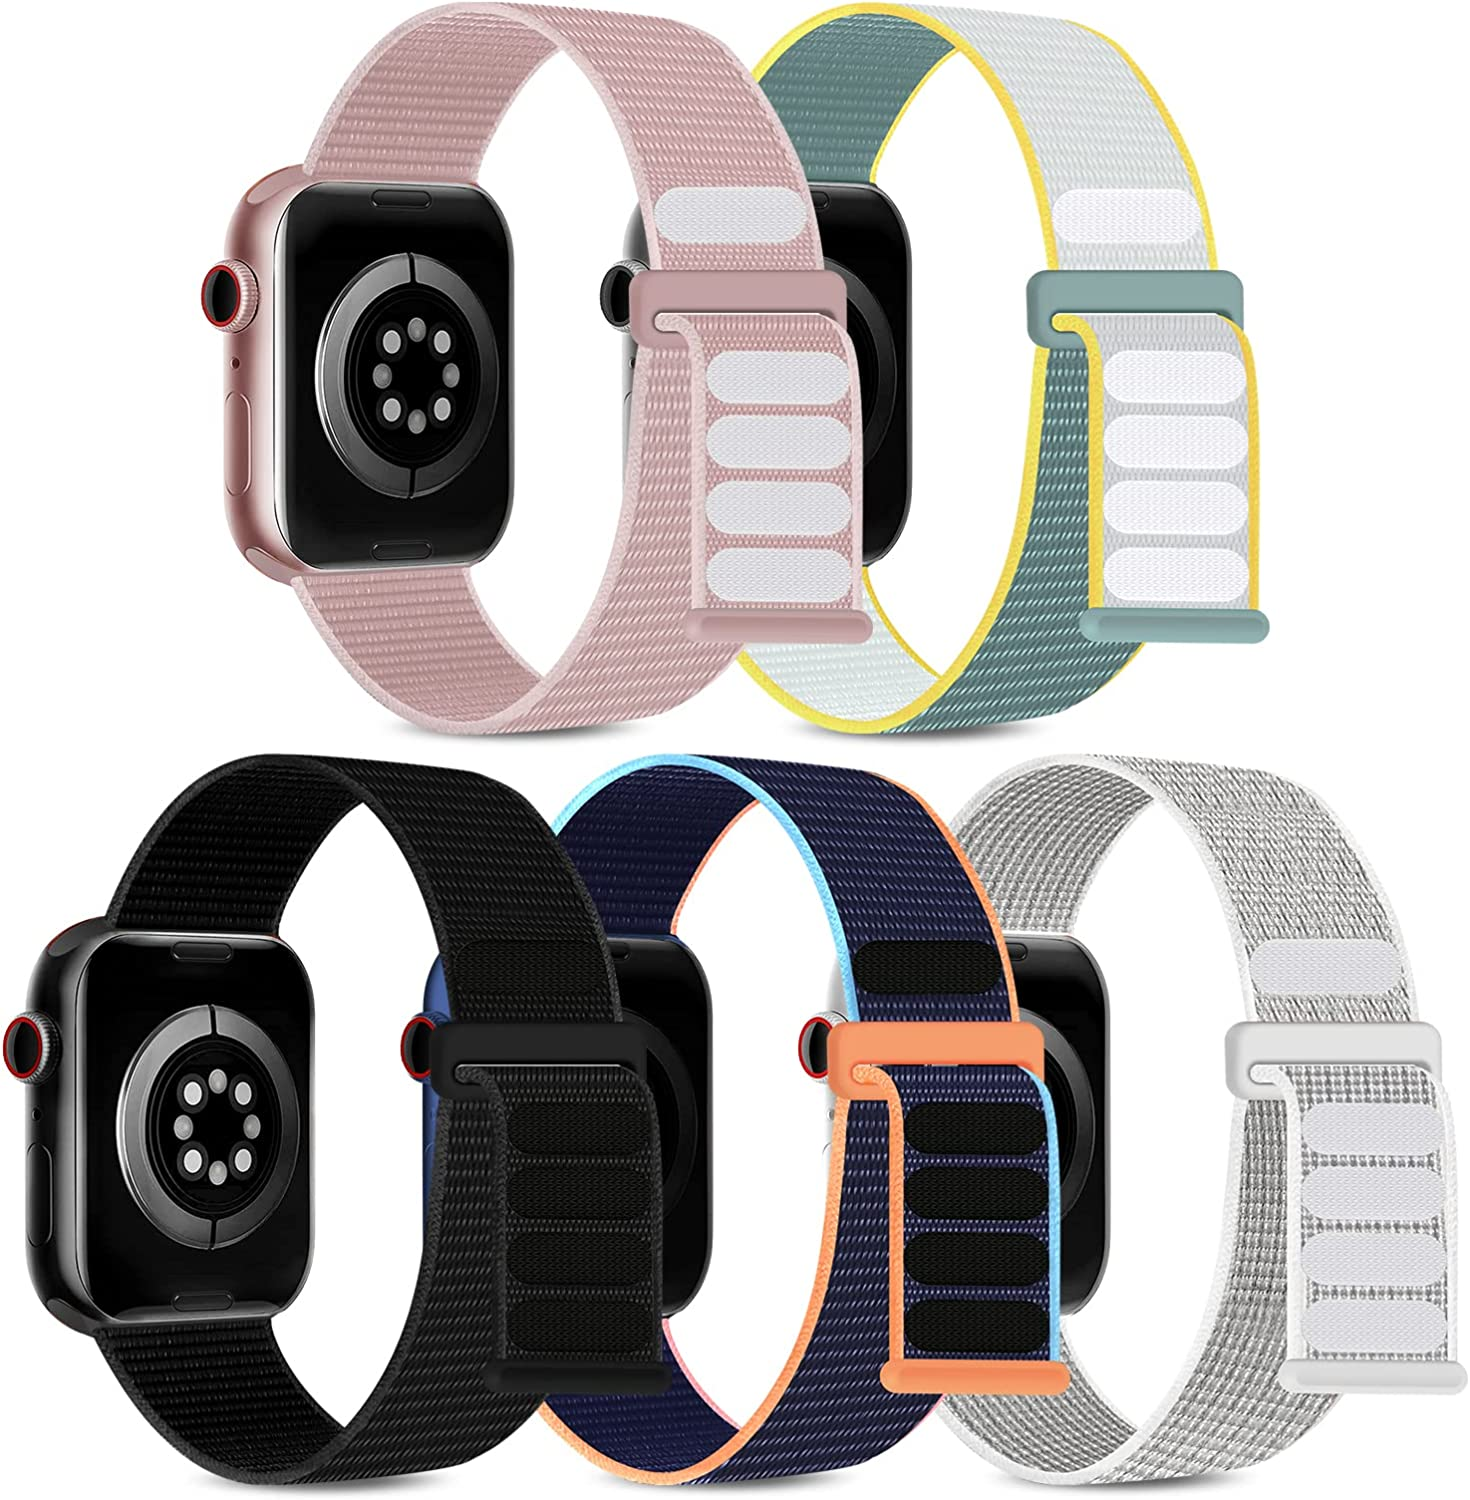 5 Pack Sport Loop Bands Compatible with Apple Watch Band 38mm 40mm 41mm 42mm 44mm 45mm Women Men, Soft Nylon Braided Elastic Strap Replacement Wristband for iWatch Series 7/6/5/4/3/2/1/SE